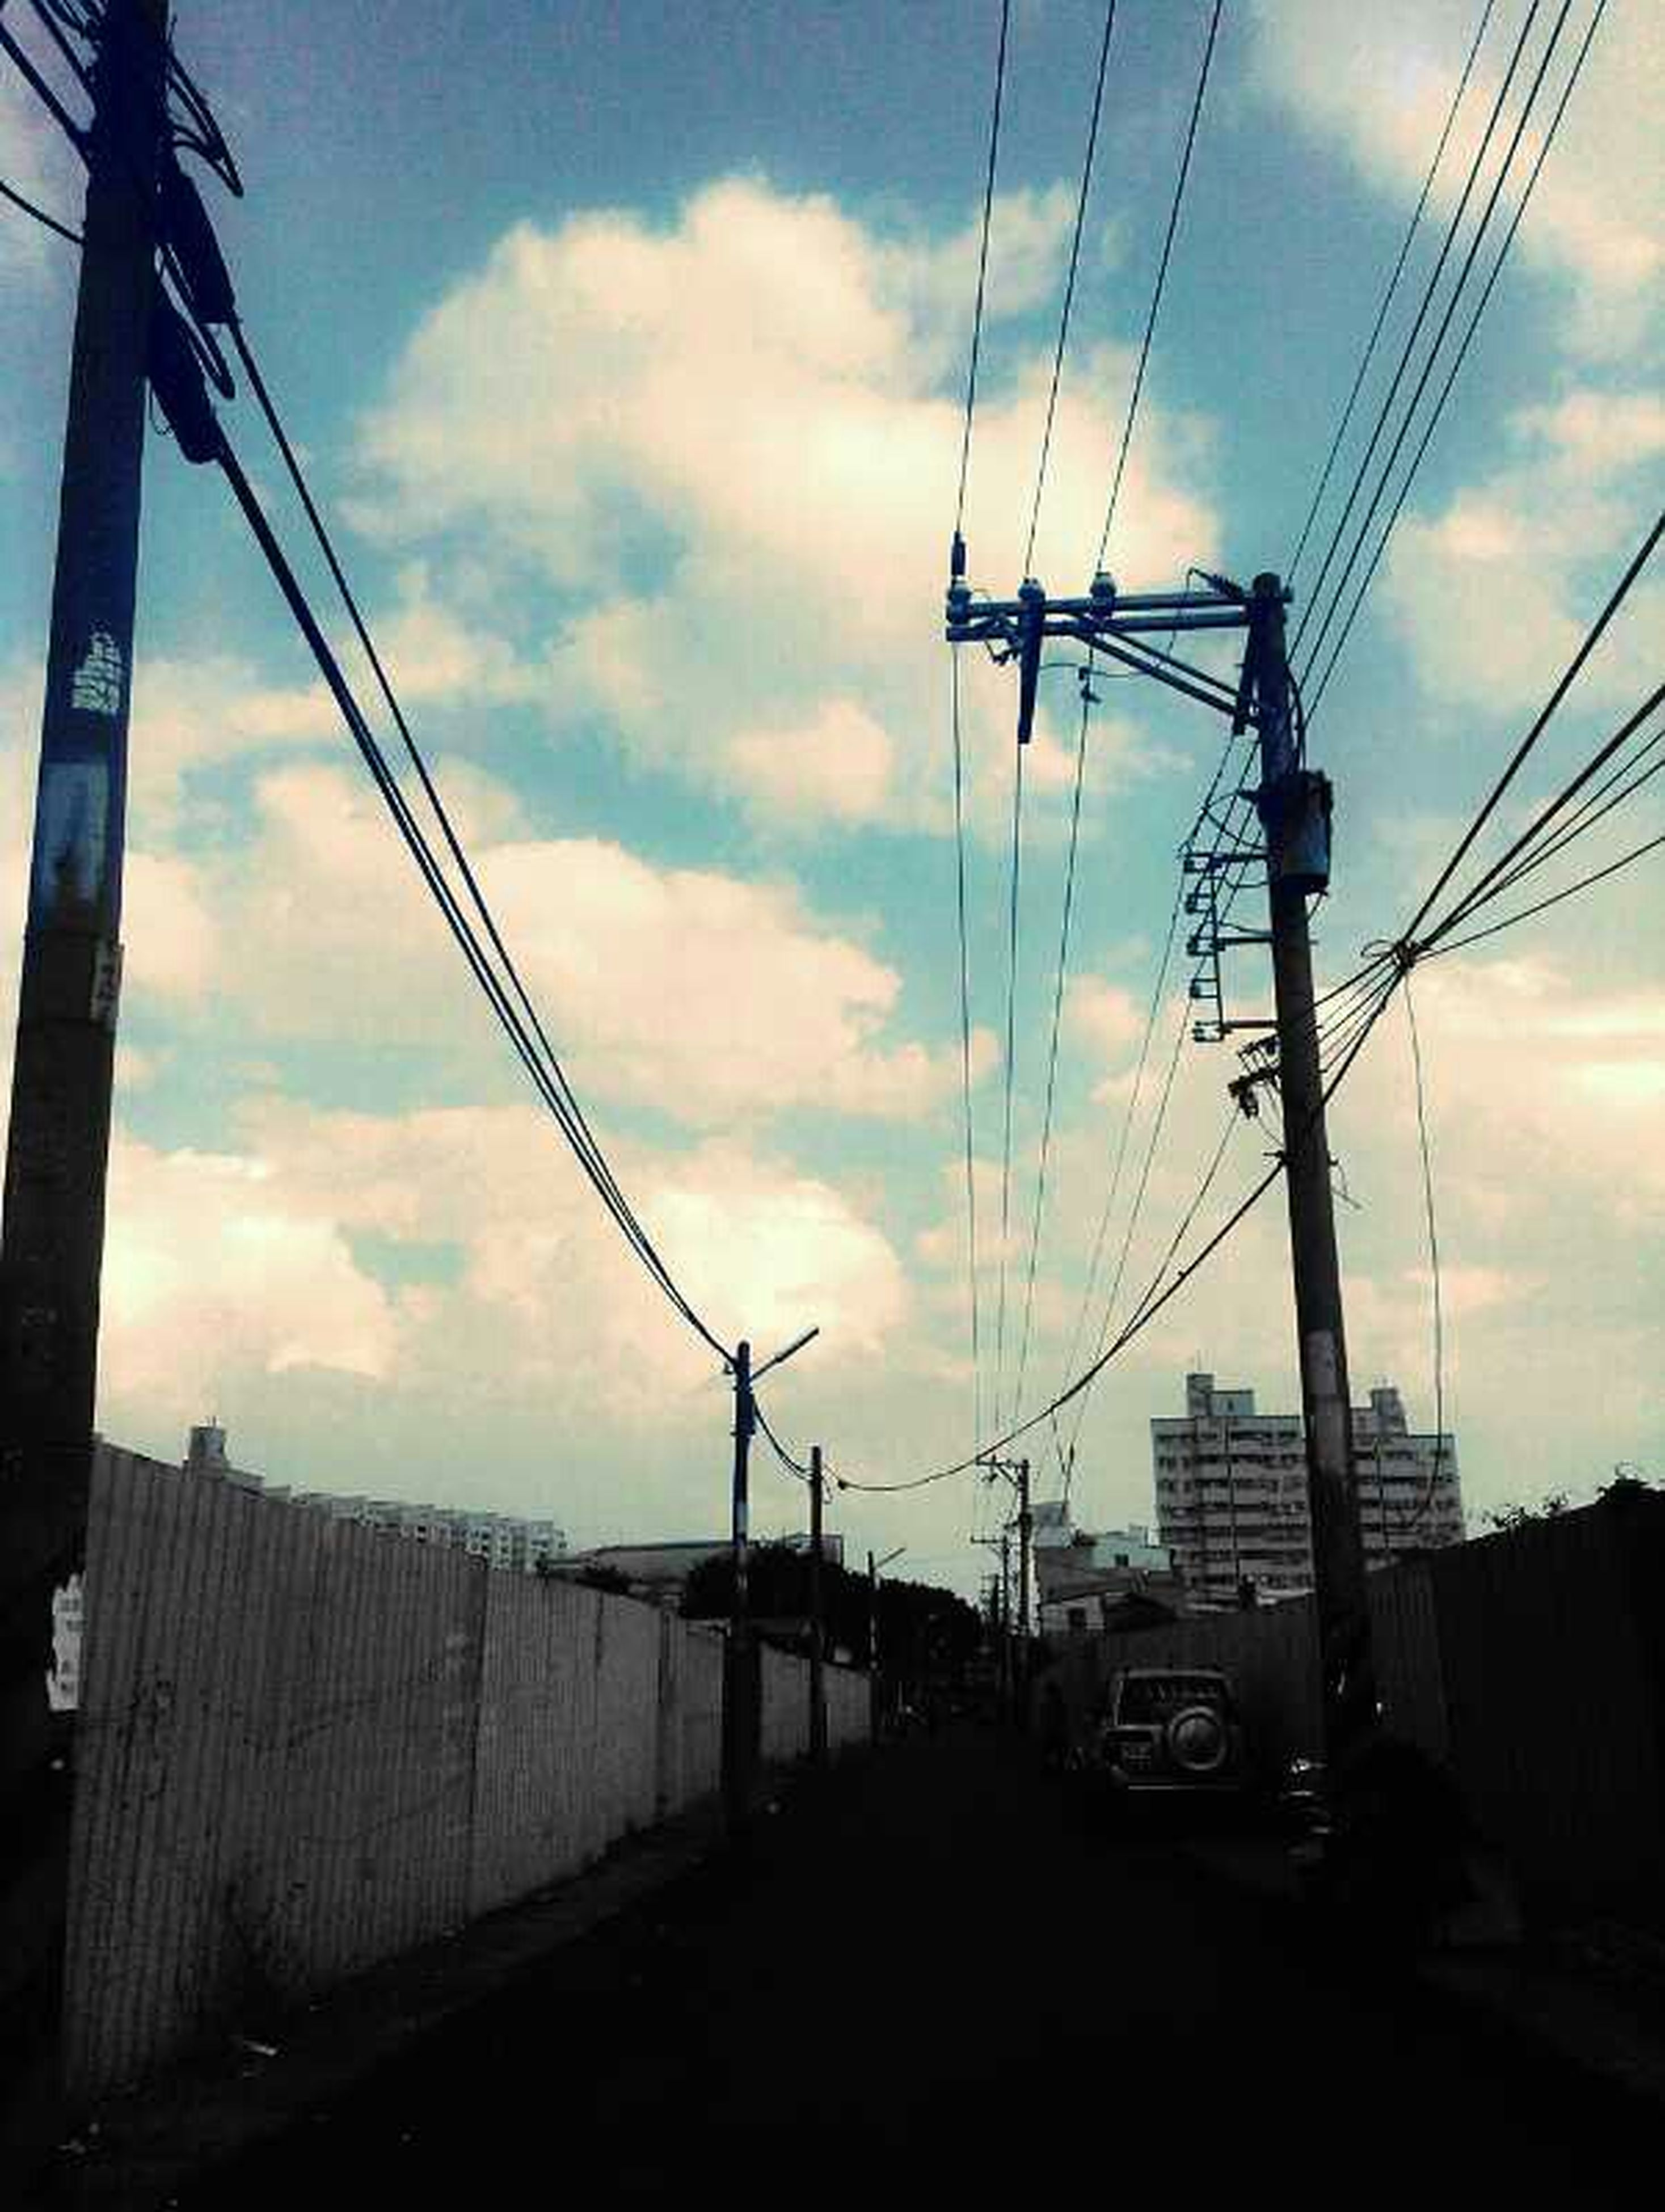 power line, electricity pylon, sky, cable, power supply, electricity, built structure, architecture, connection, cloud - sky, low angle view, building exterior, fuel and power generation, cloudy, silhouette, power cable, cloud, technology, transportation, sunset